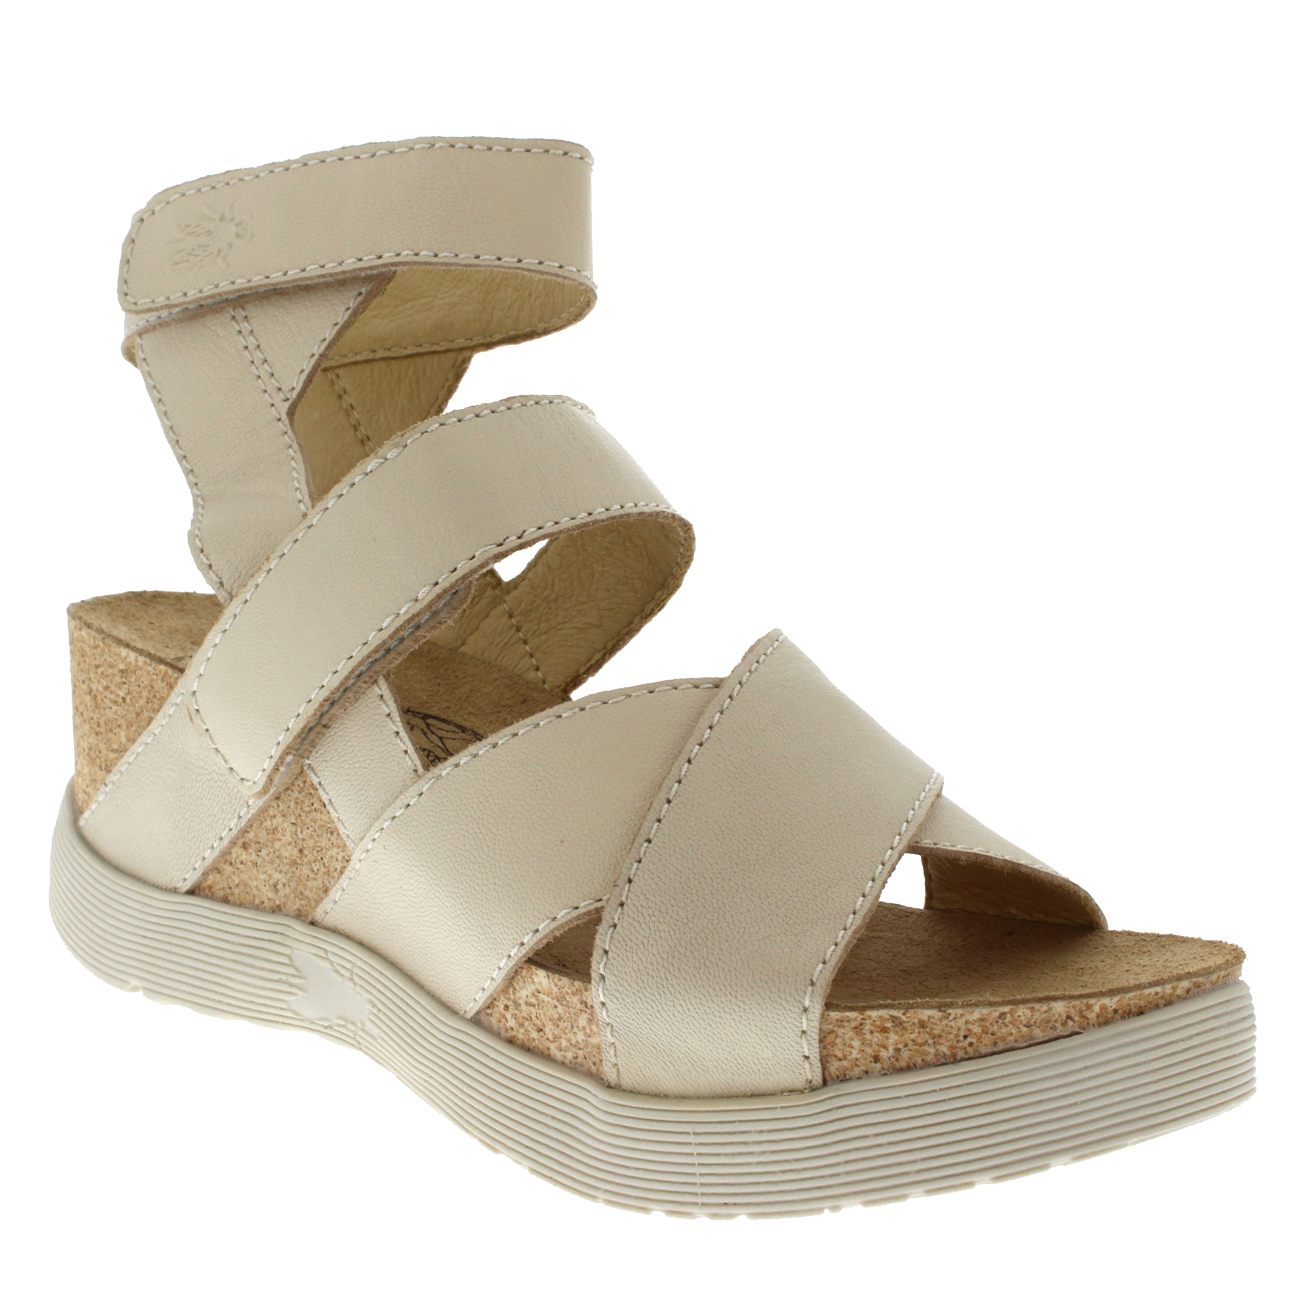 Womens-Fly-London-Wedge-Leather-Open-Toe-Summer-Cut-Out-Sandals-US-5-12 thumbnail 16